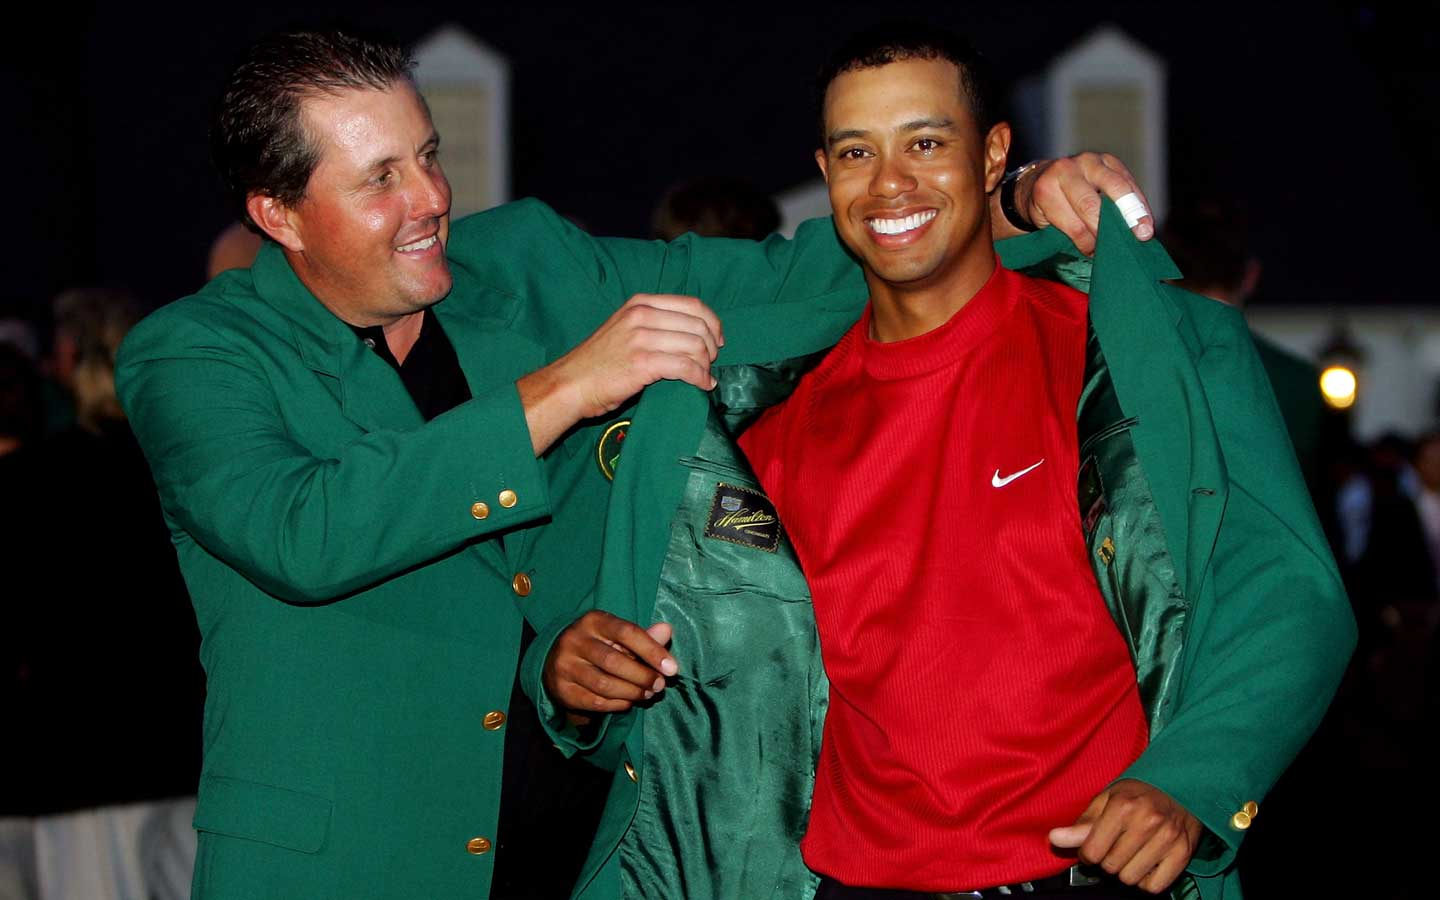 This is the moment where Tiger Woods put on his green jac ...